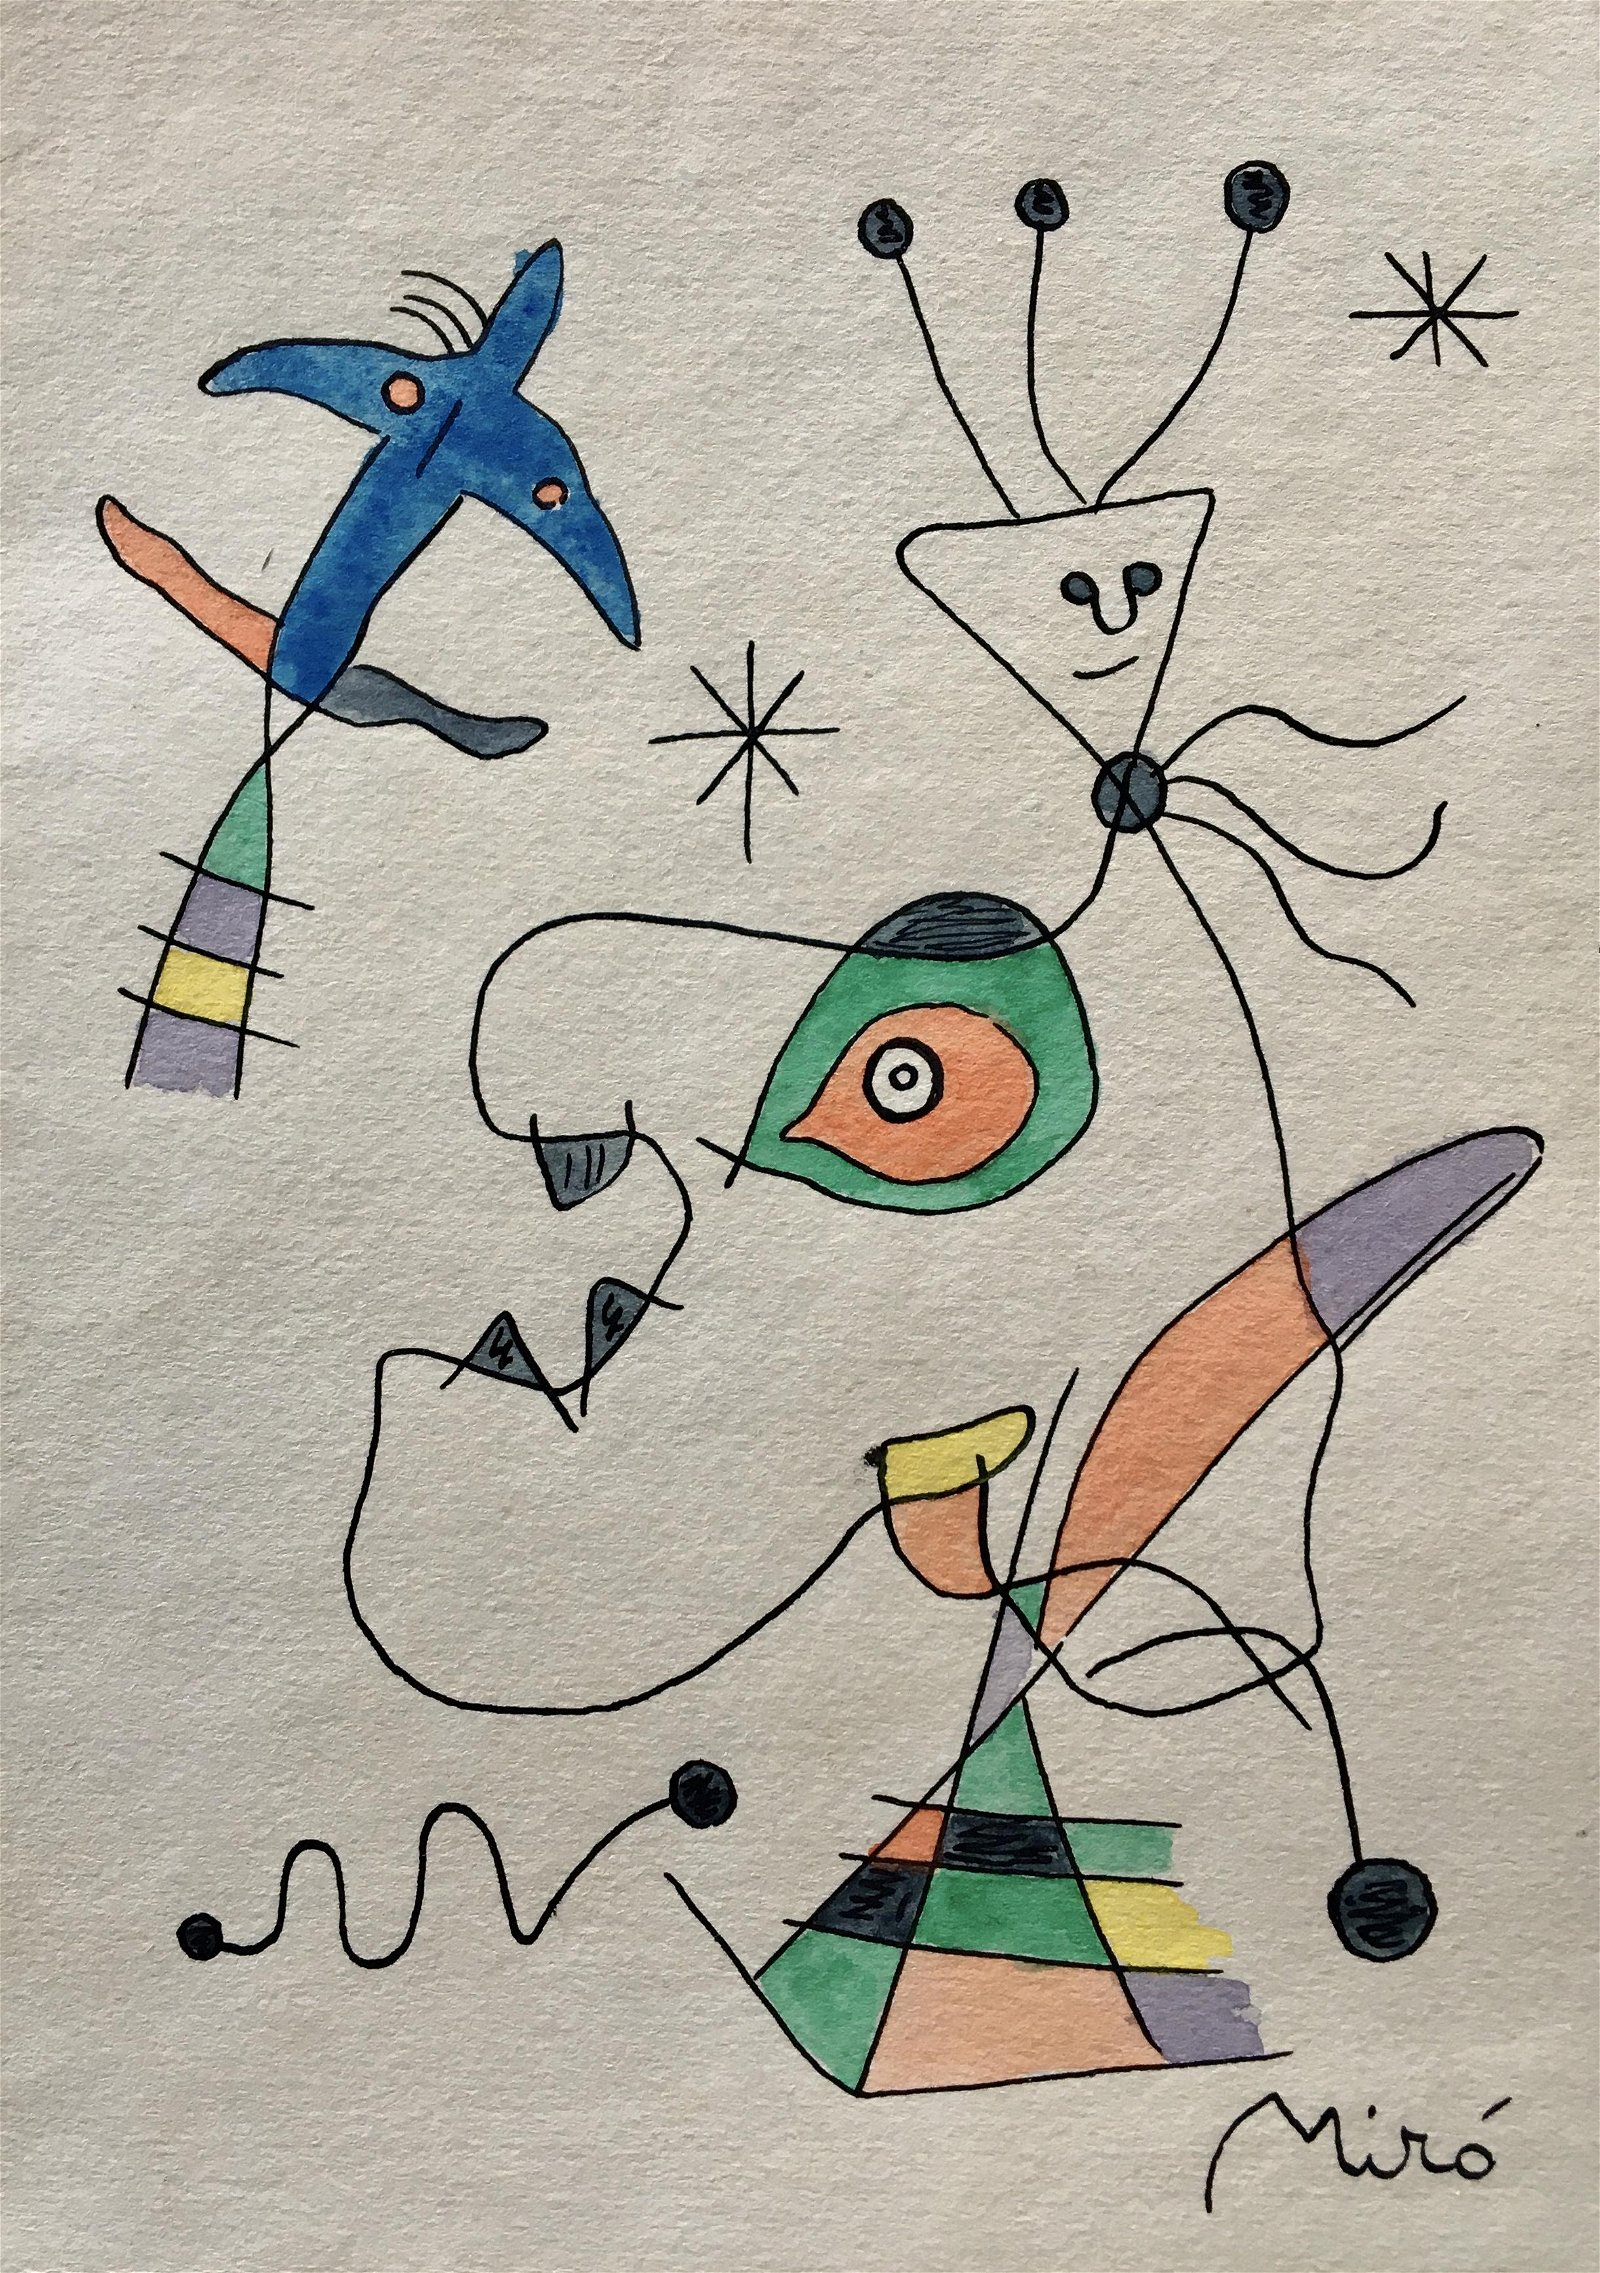 JOAN MIRO ABSTRACT DRAWING ON PAPER